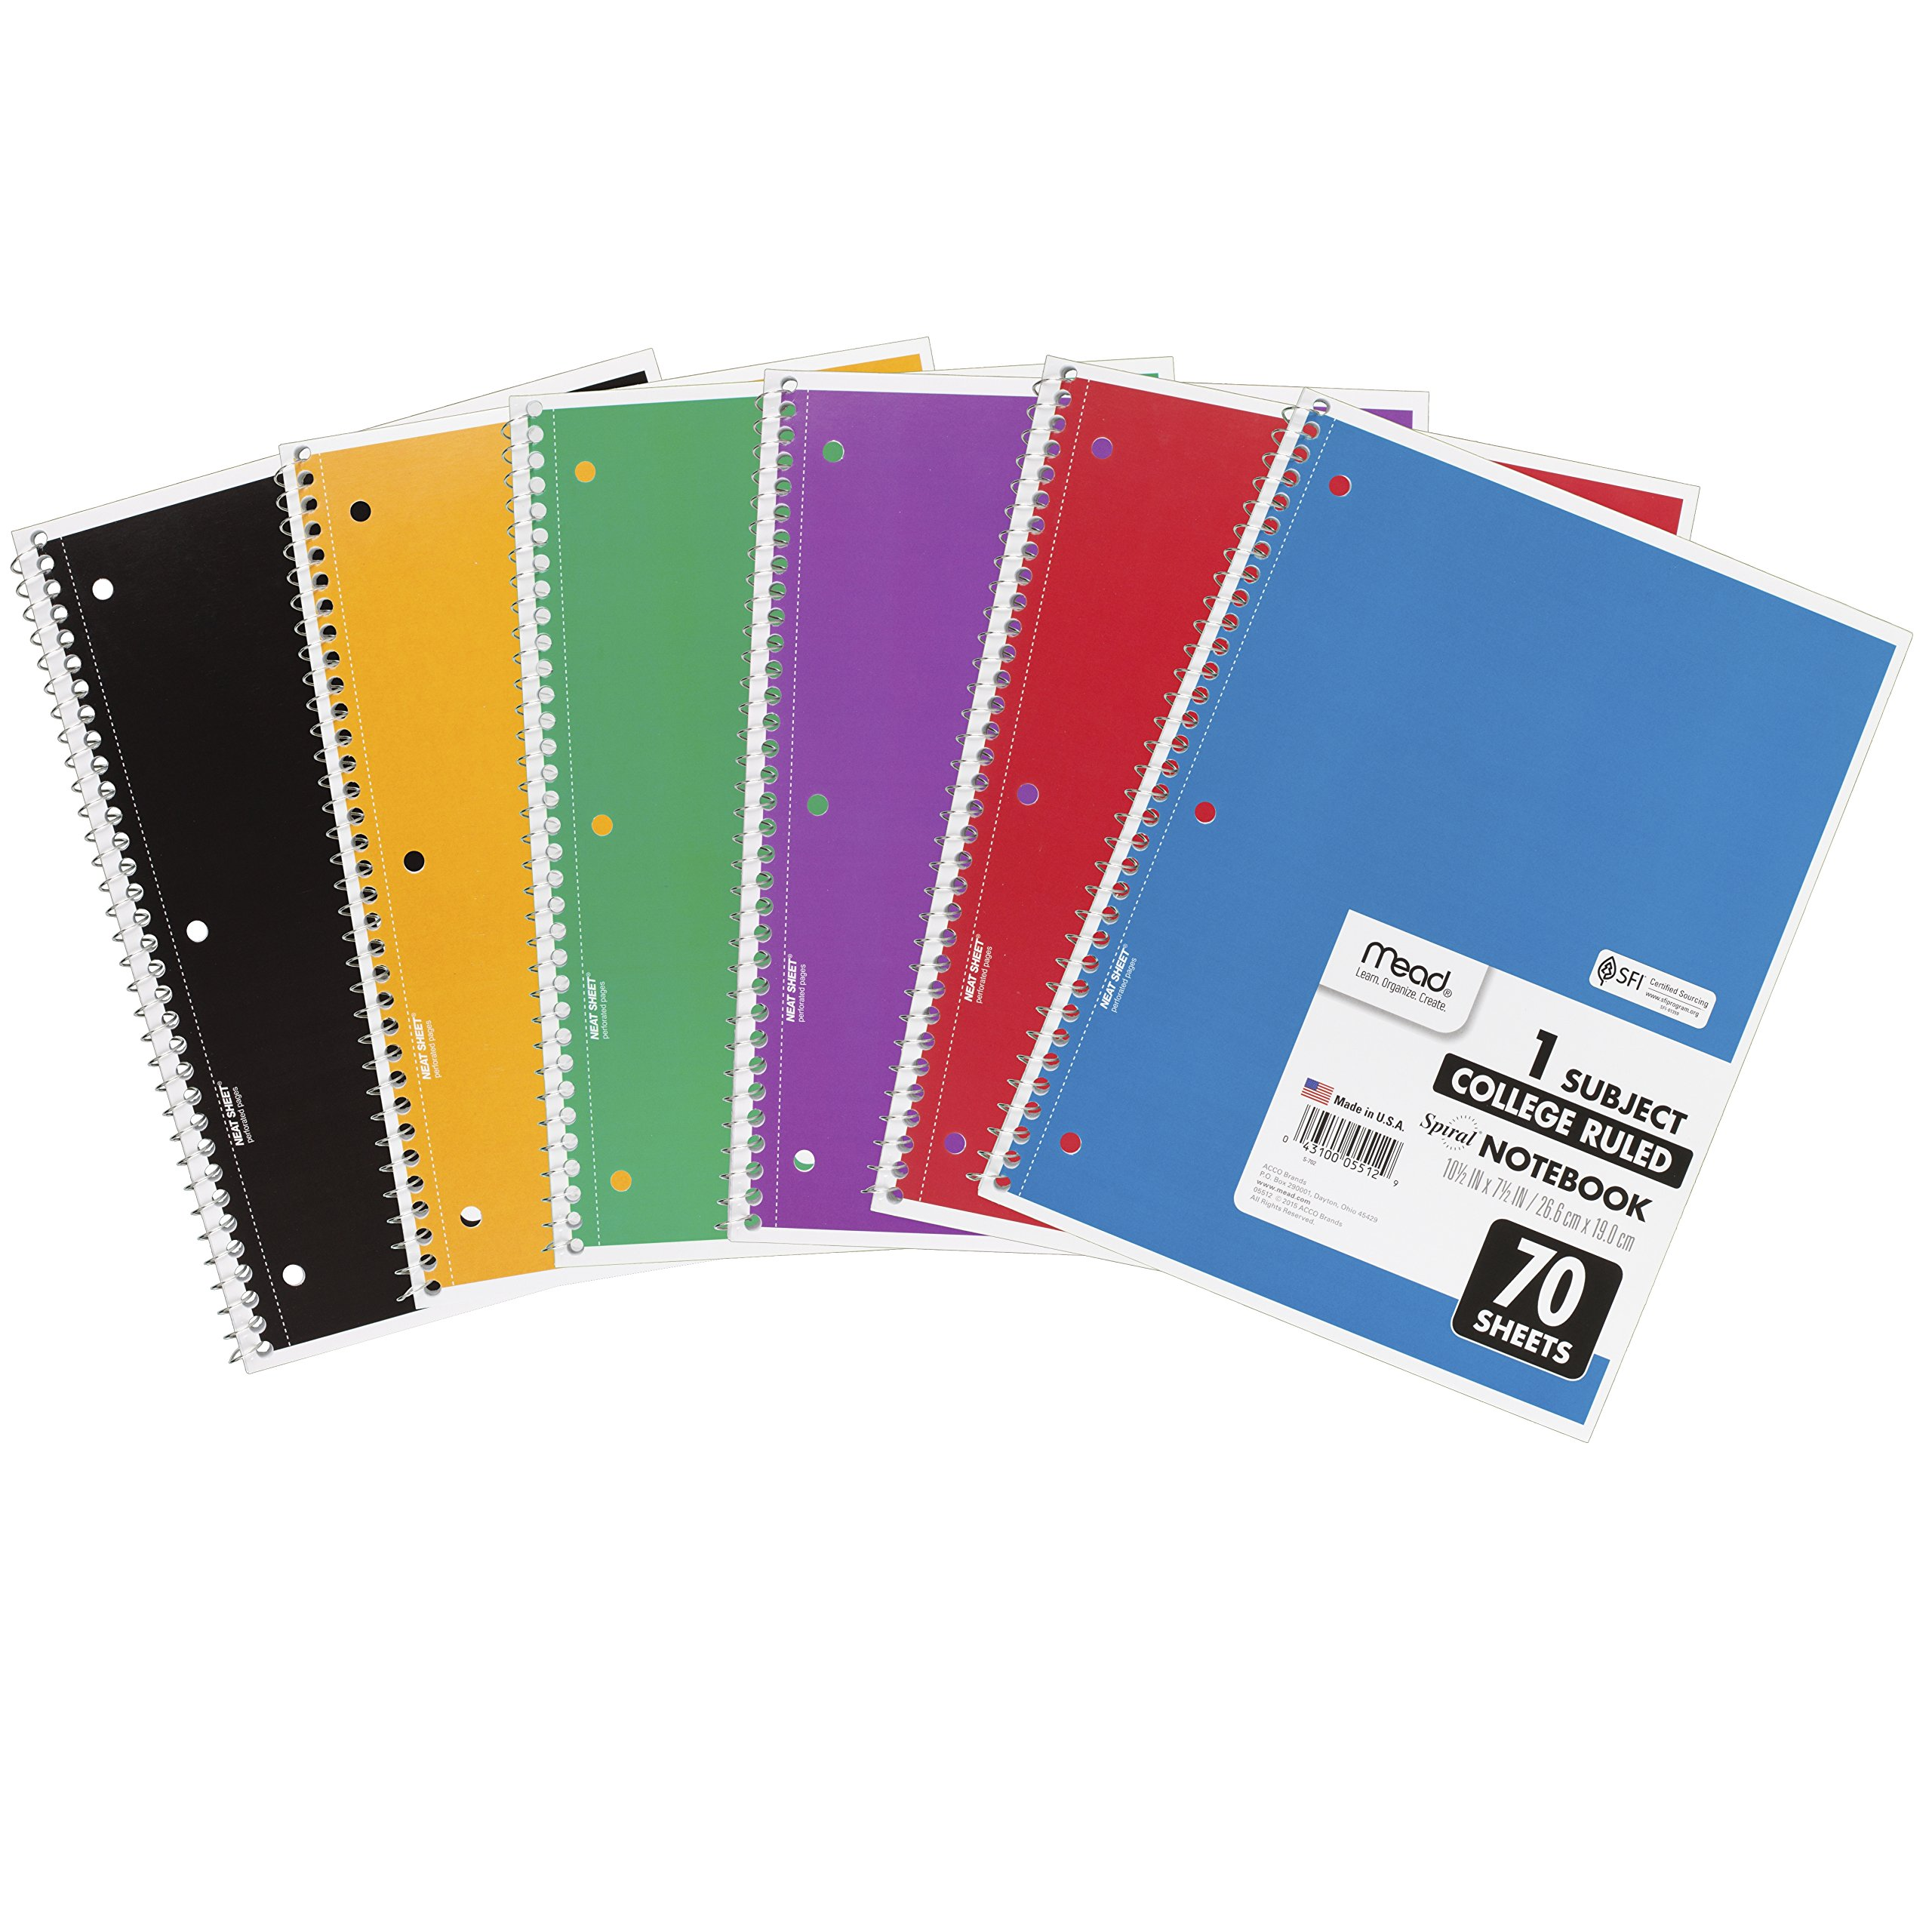 Mead Spiral Notebooks, 1 Subject, College Ruled Paper, 70 Sheets, 10-1/2'' x 7-1/2'', Assorted Colors, 6 Pack (73065)